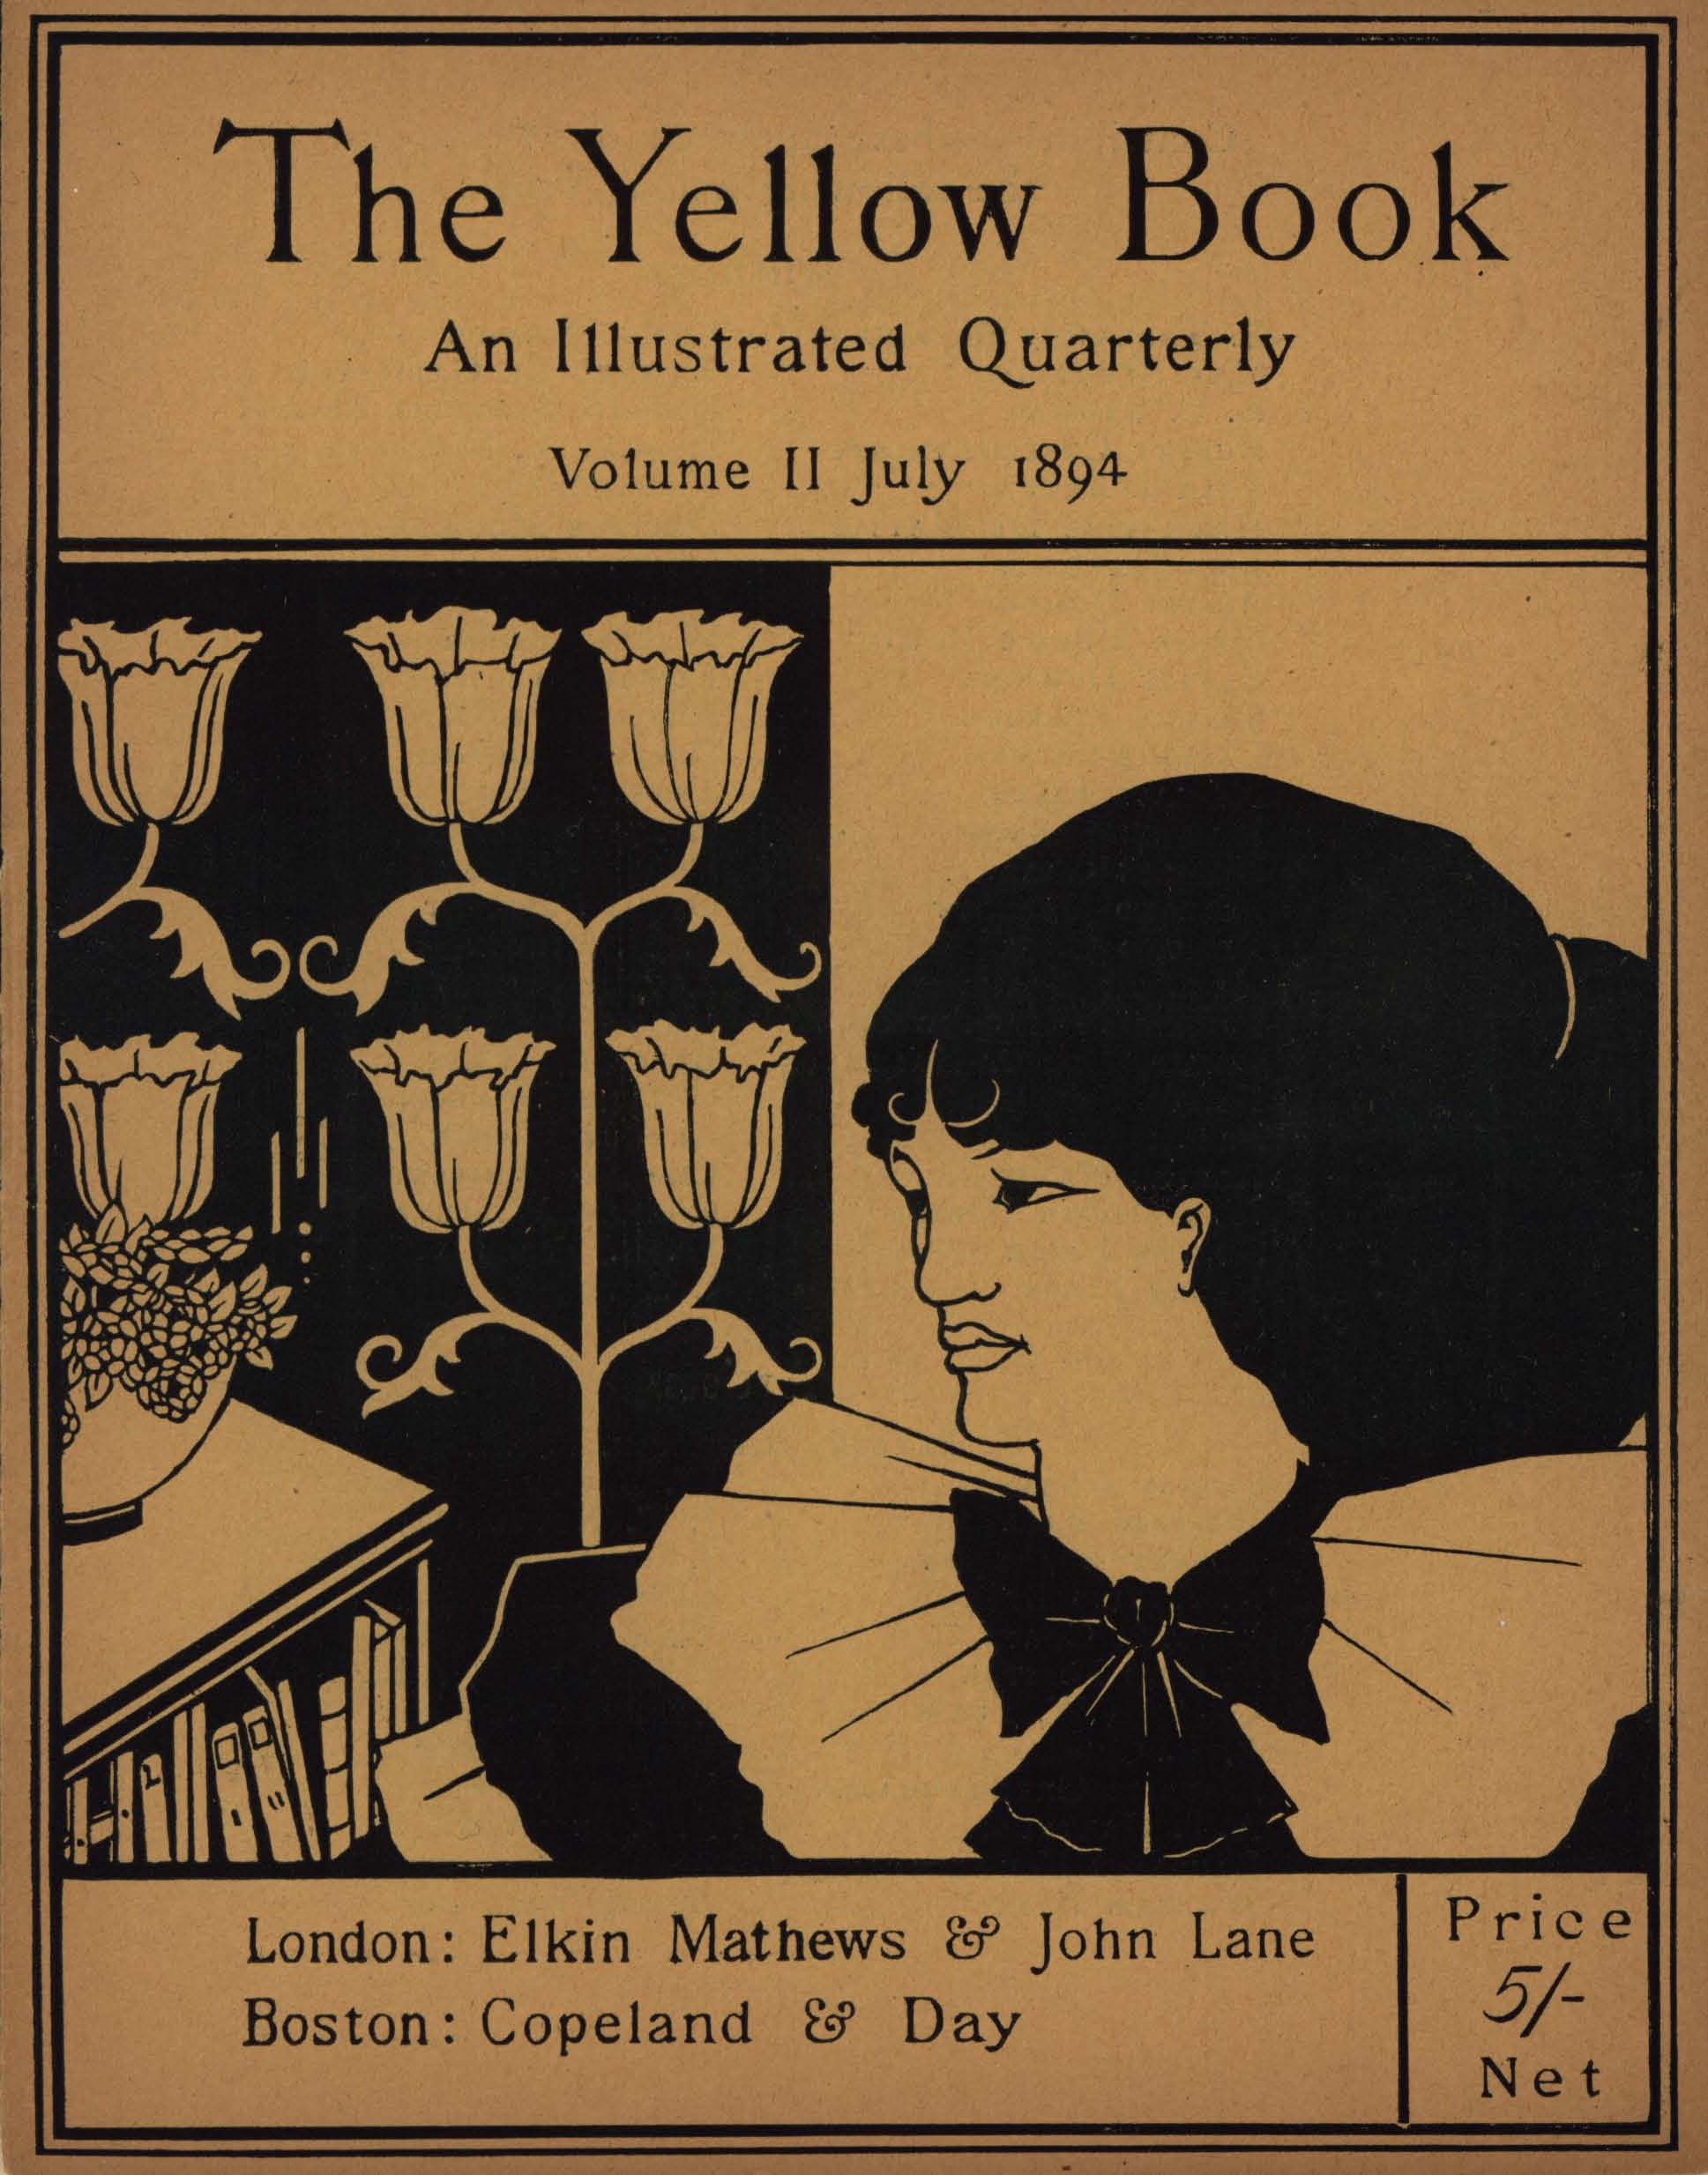 The image is divided in half vertically the left side is black and the right side is uncoloured The left side of the image contains a bookcase with a potted plant on top Behind and above the bookcase is a flowering candelabra design On the right side of the image is a woman s head in 3 4 position looking left her shoulders are covered in three ruffled collars tied with a large black bow The image is printed black on yellow paper and vertically displayed